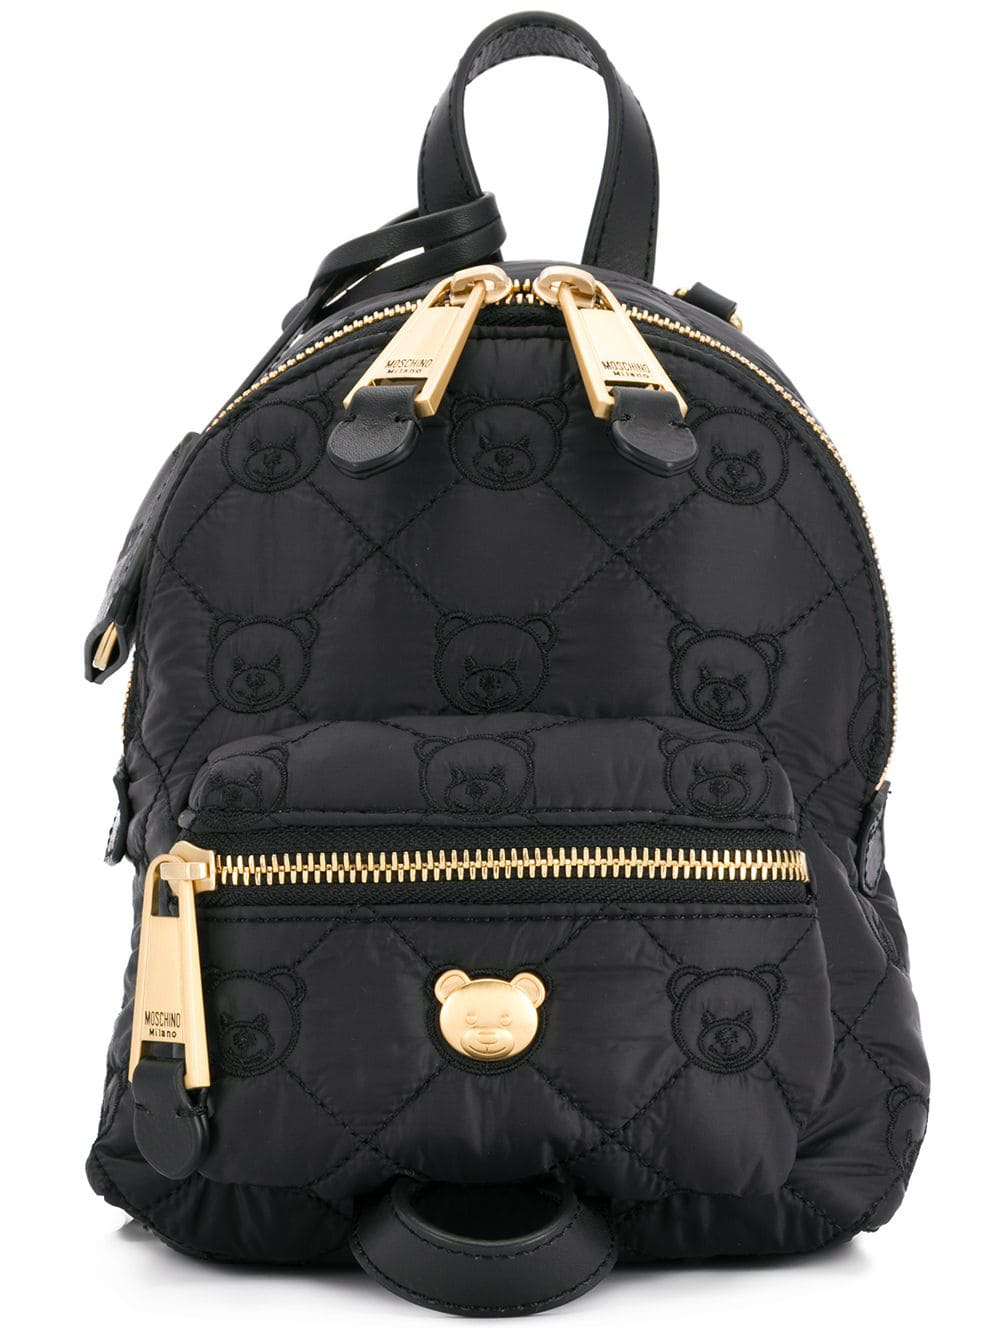 8512b764772 Moschino Black Quilted Backpack | The Shred Centre